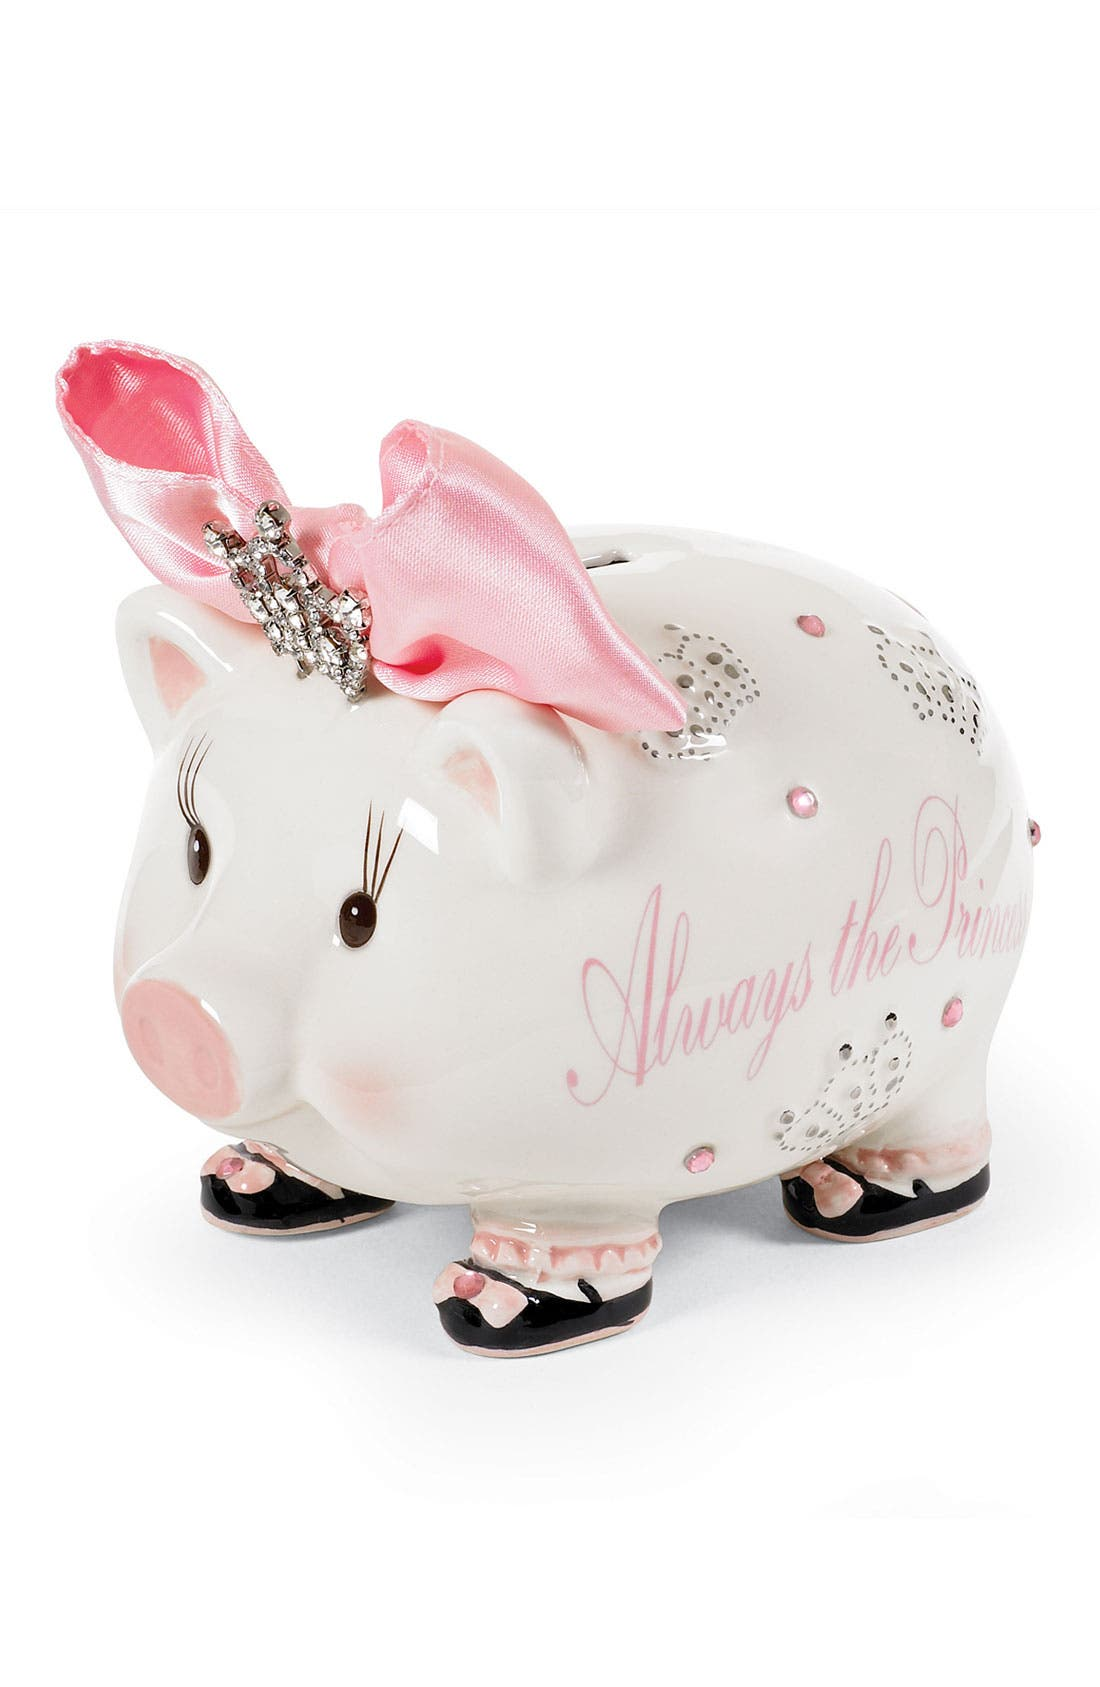 Main Image - Mud Pie 'Always the Princess' Jeweled Piggy Bank